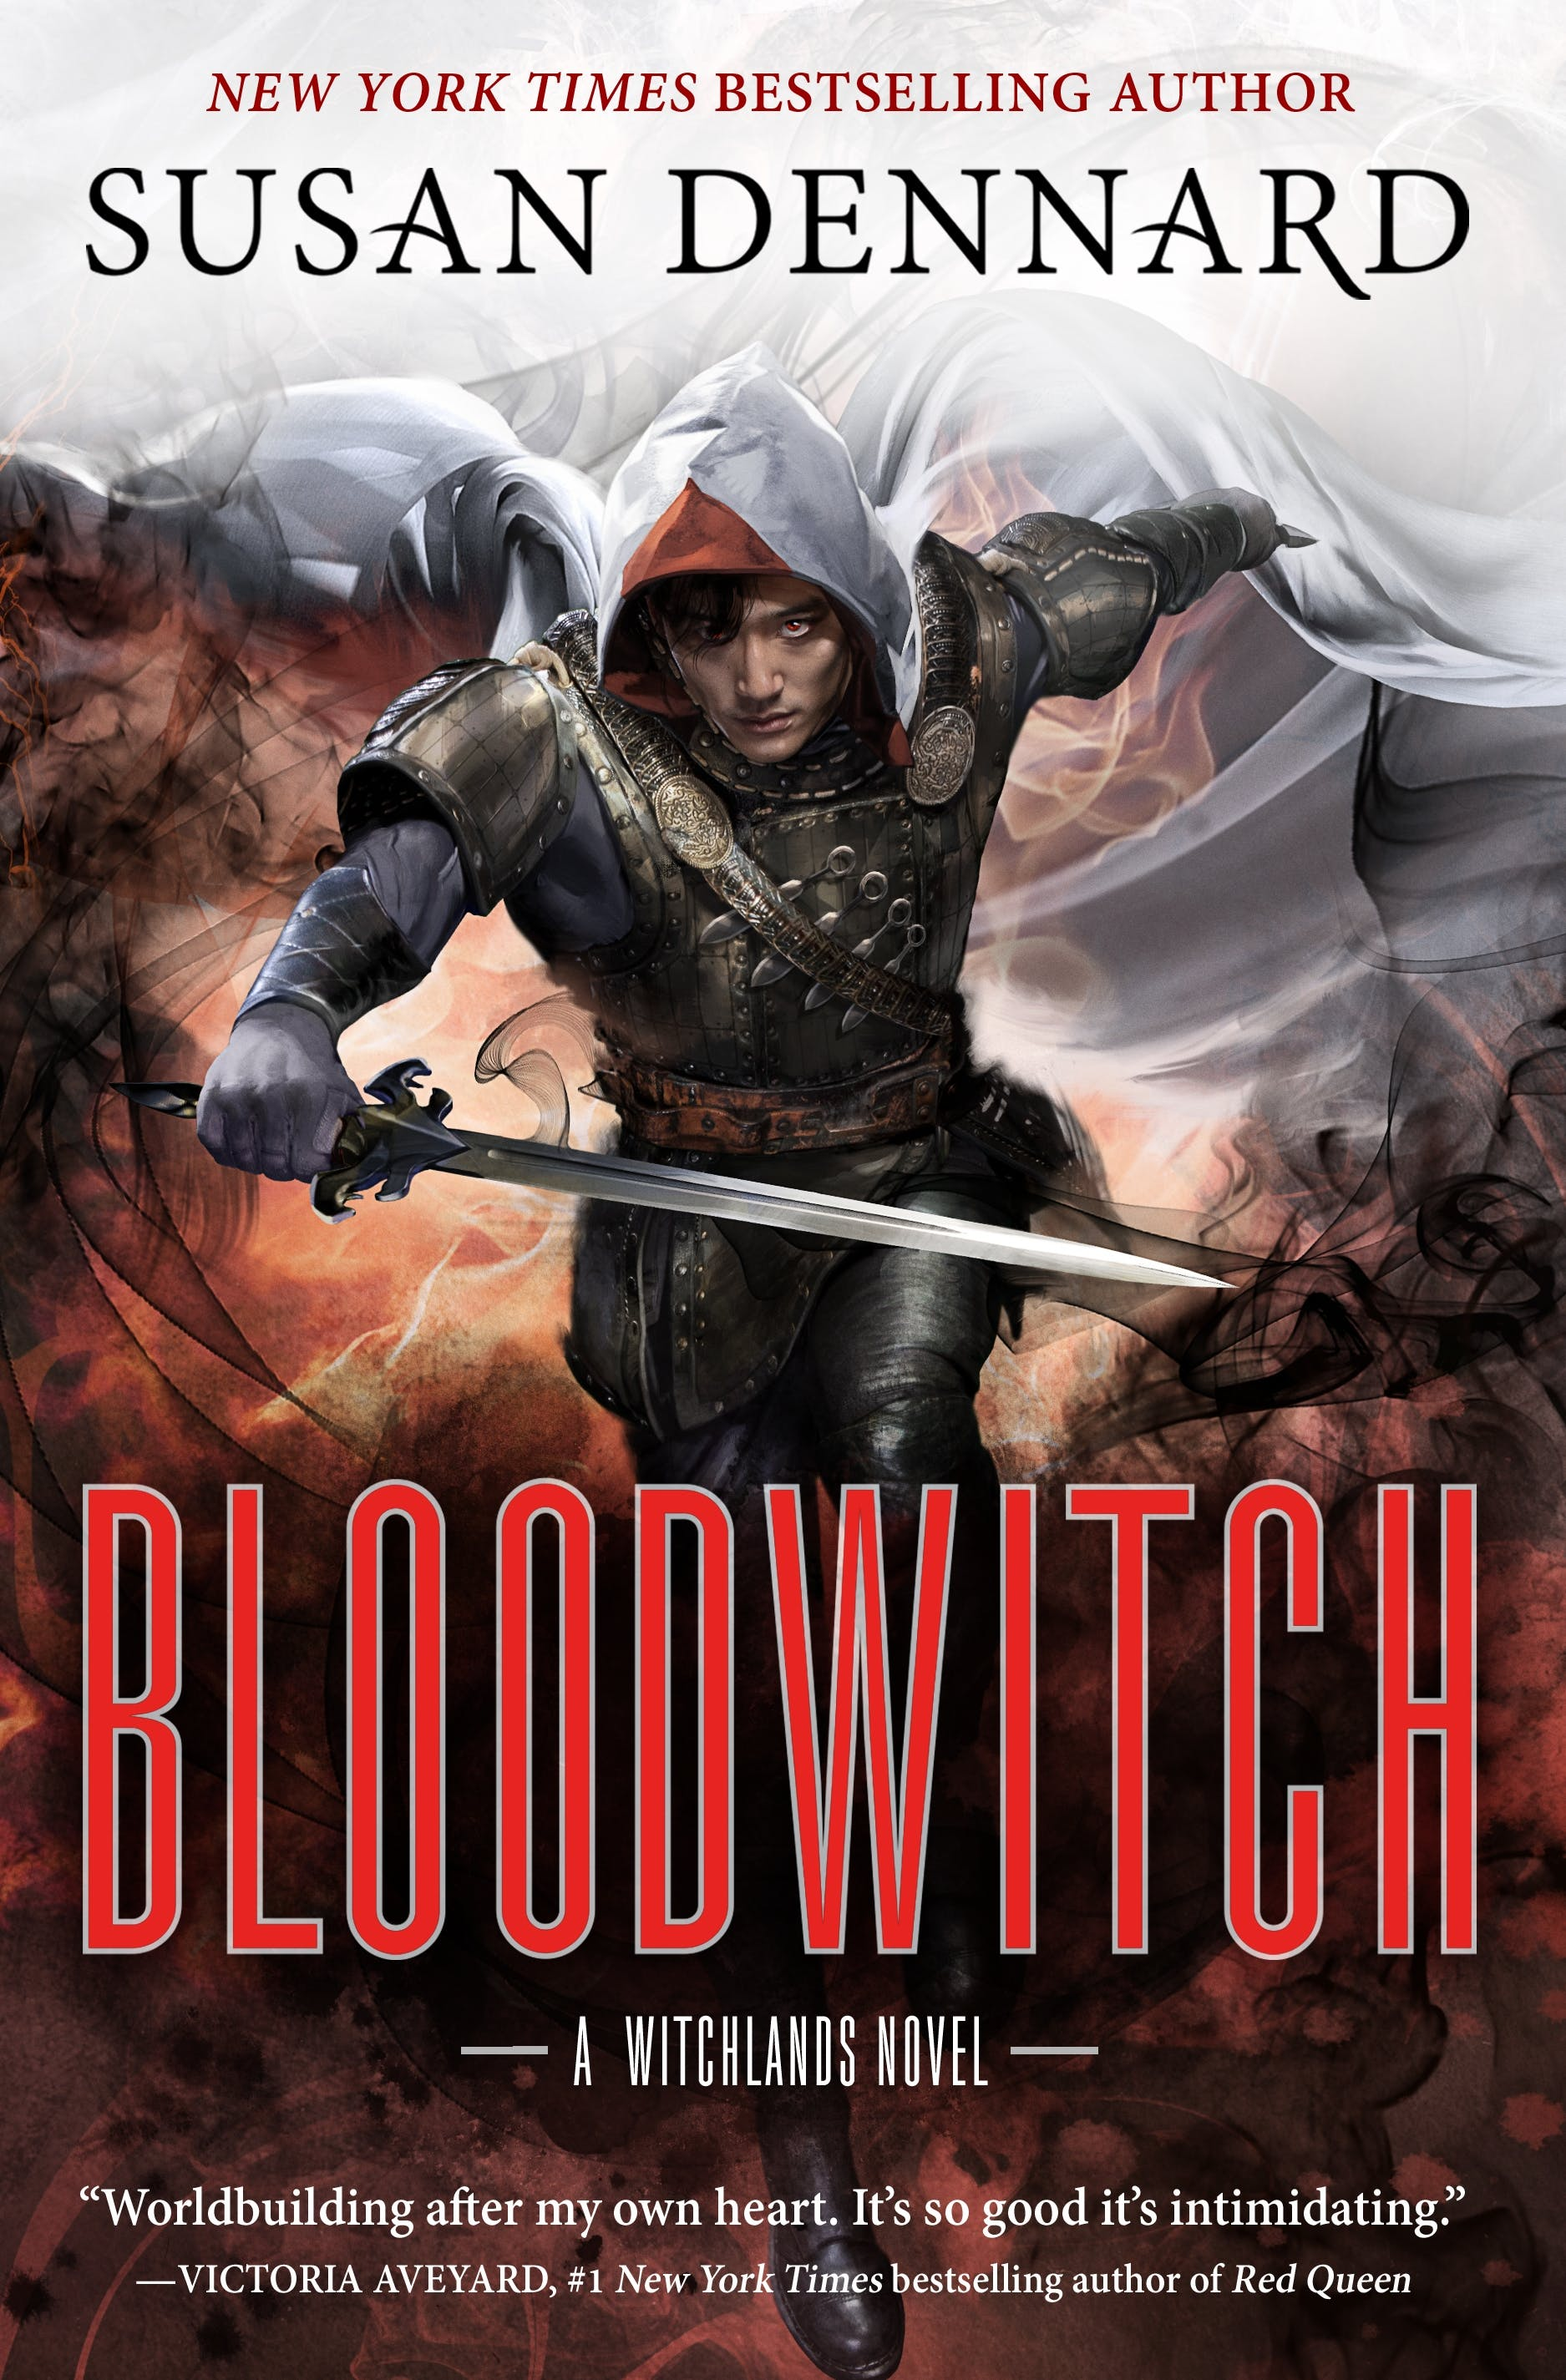 Image of Bloodwitch